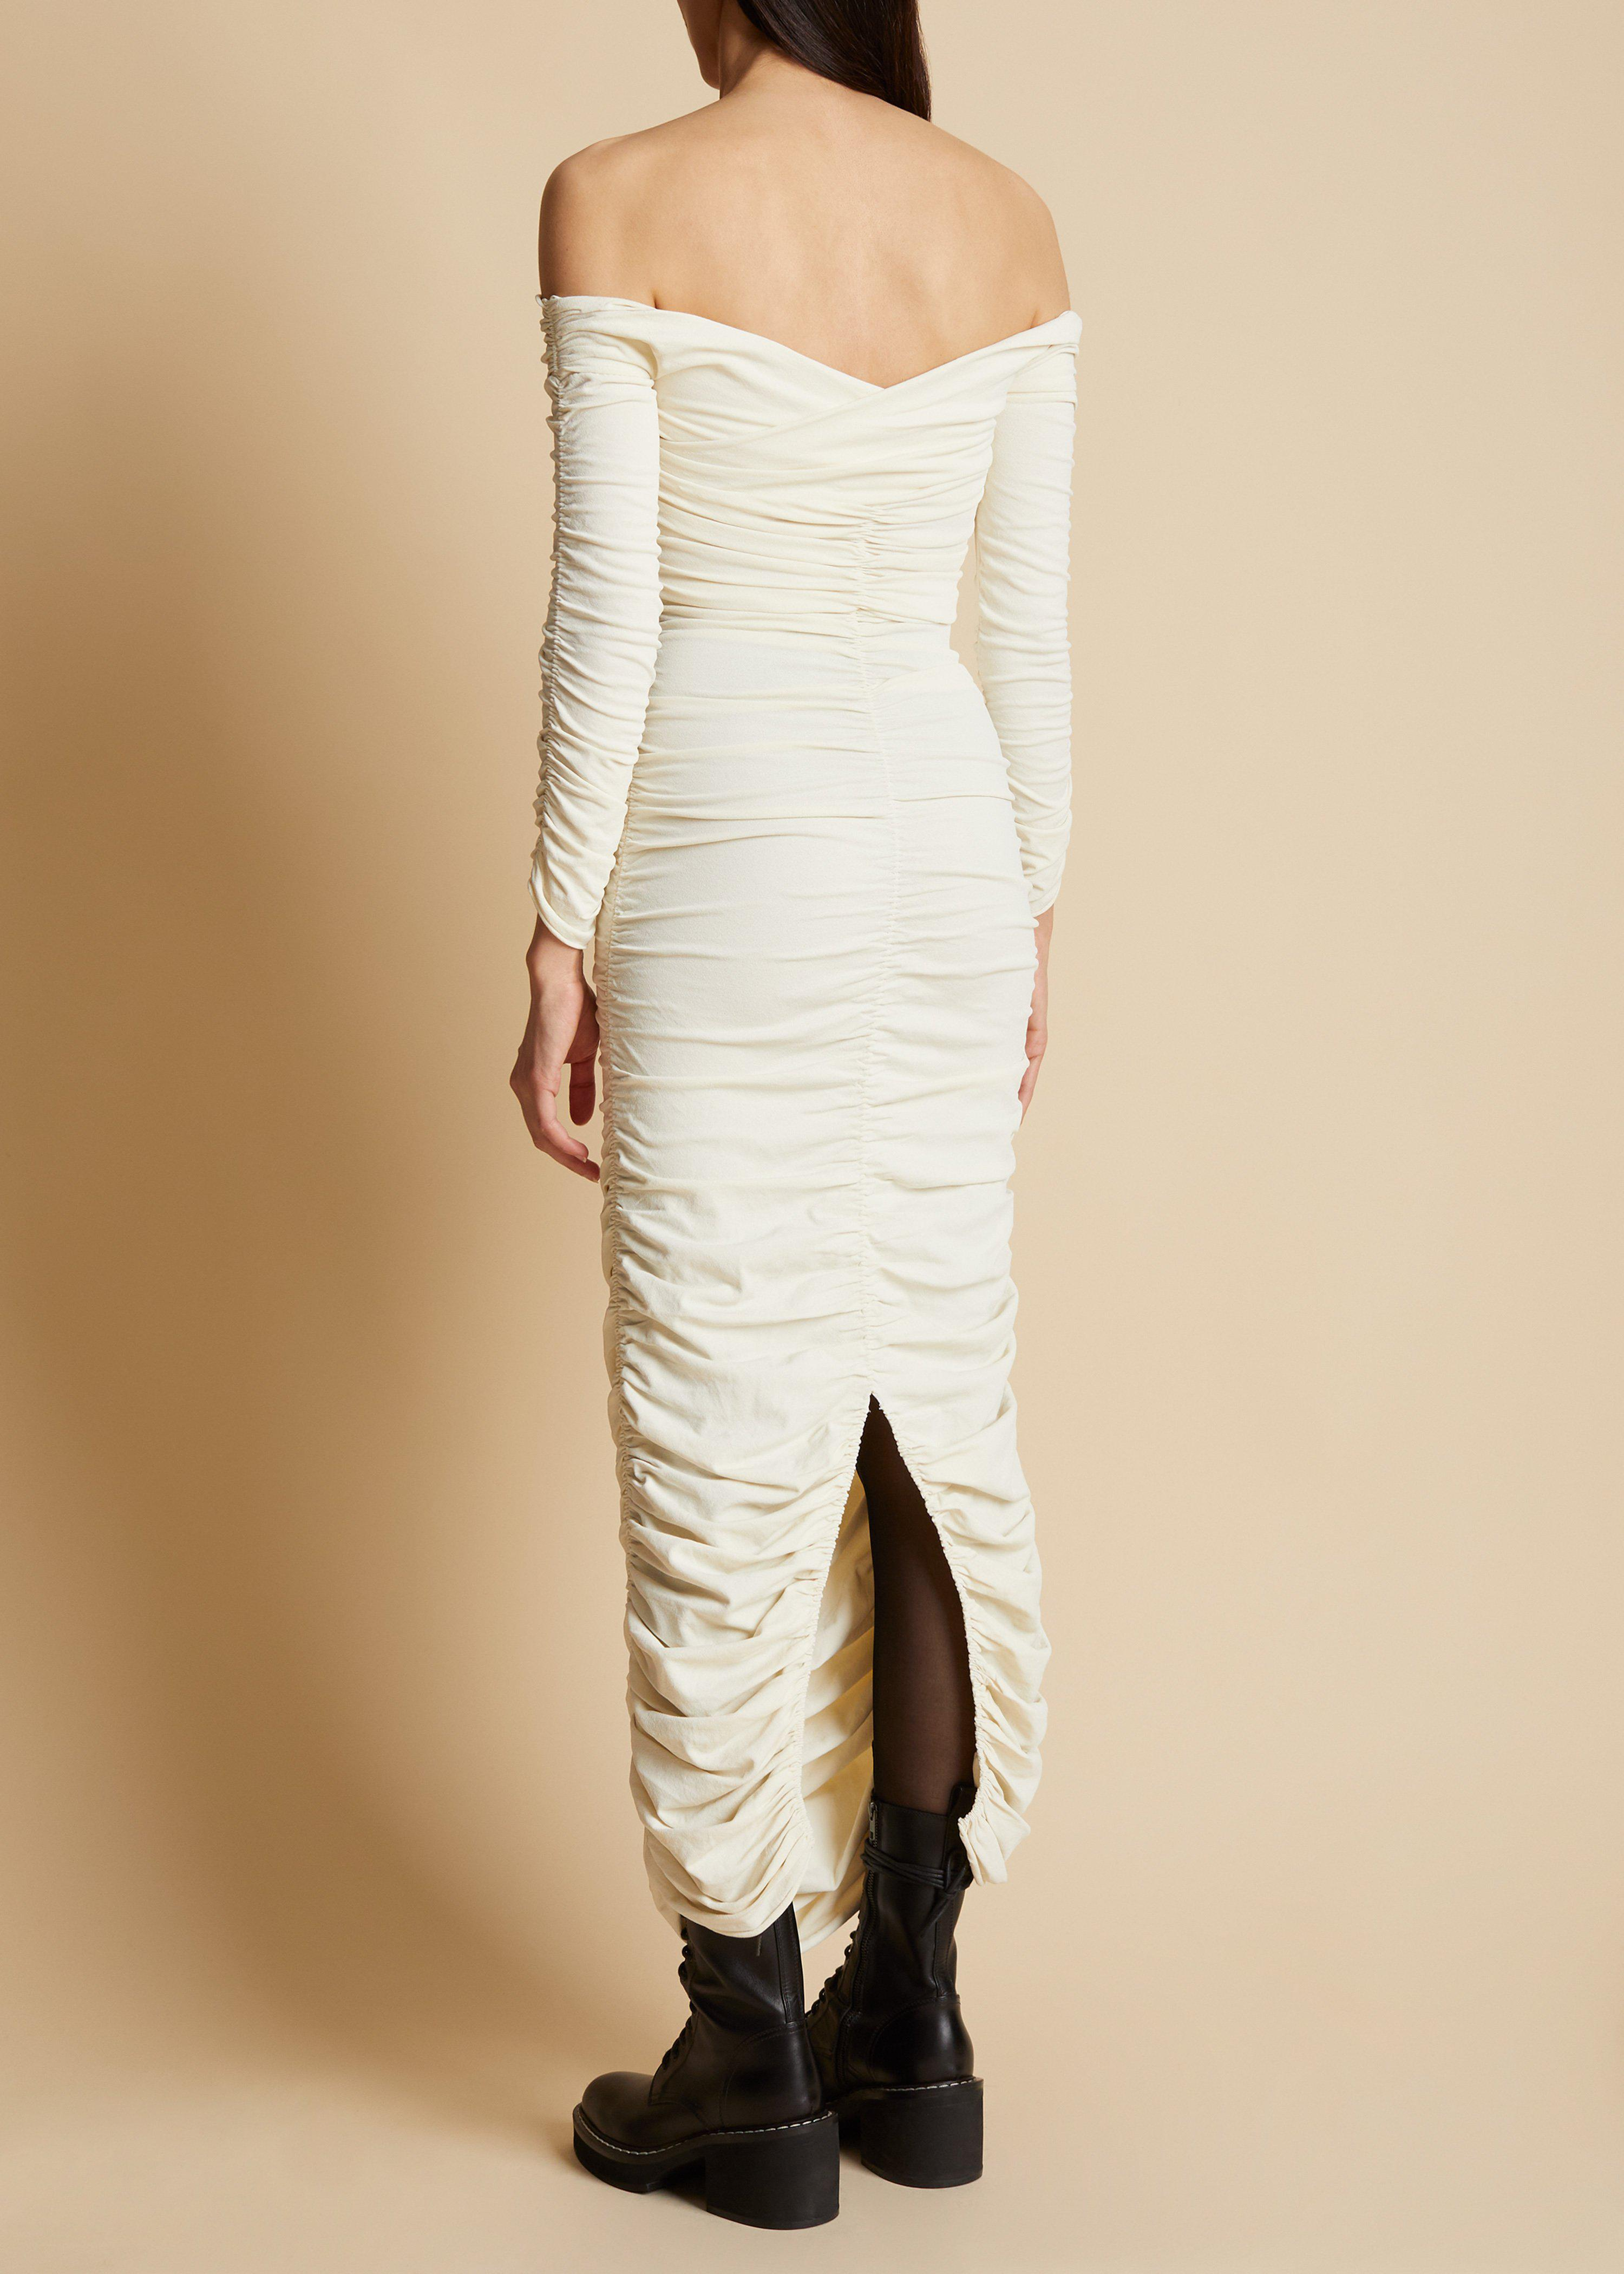 The Lydia Dress in Ivory 2